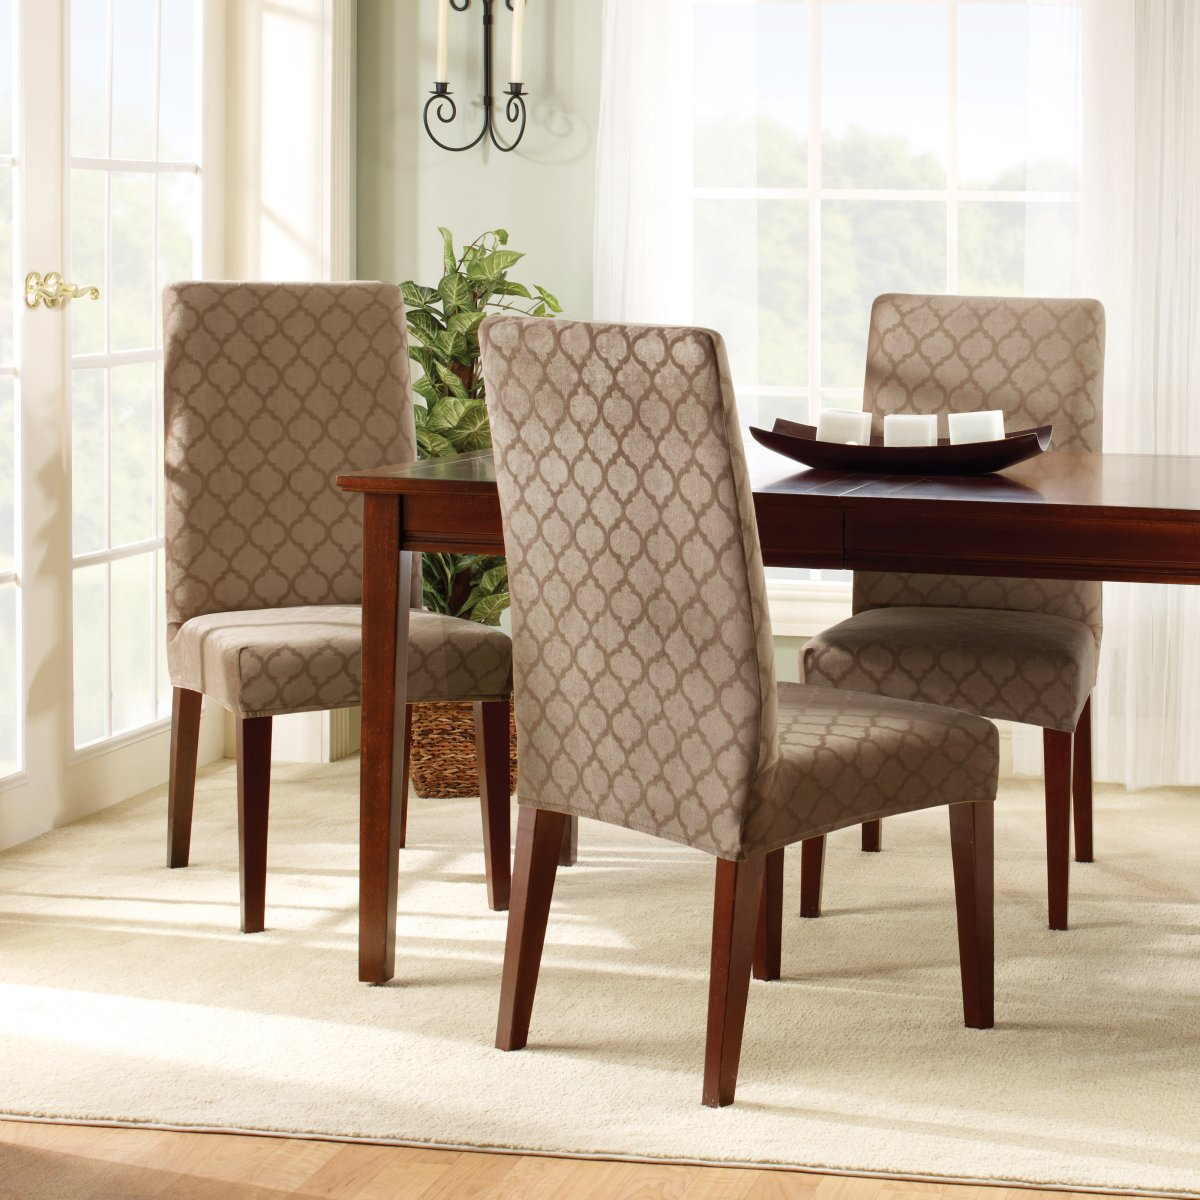 Dining Room Chair Slipcovers And Also Linen Covers With Arms Furniture